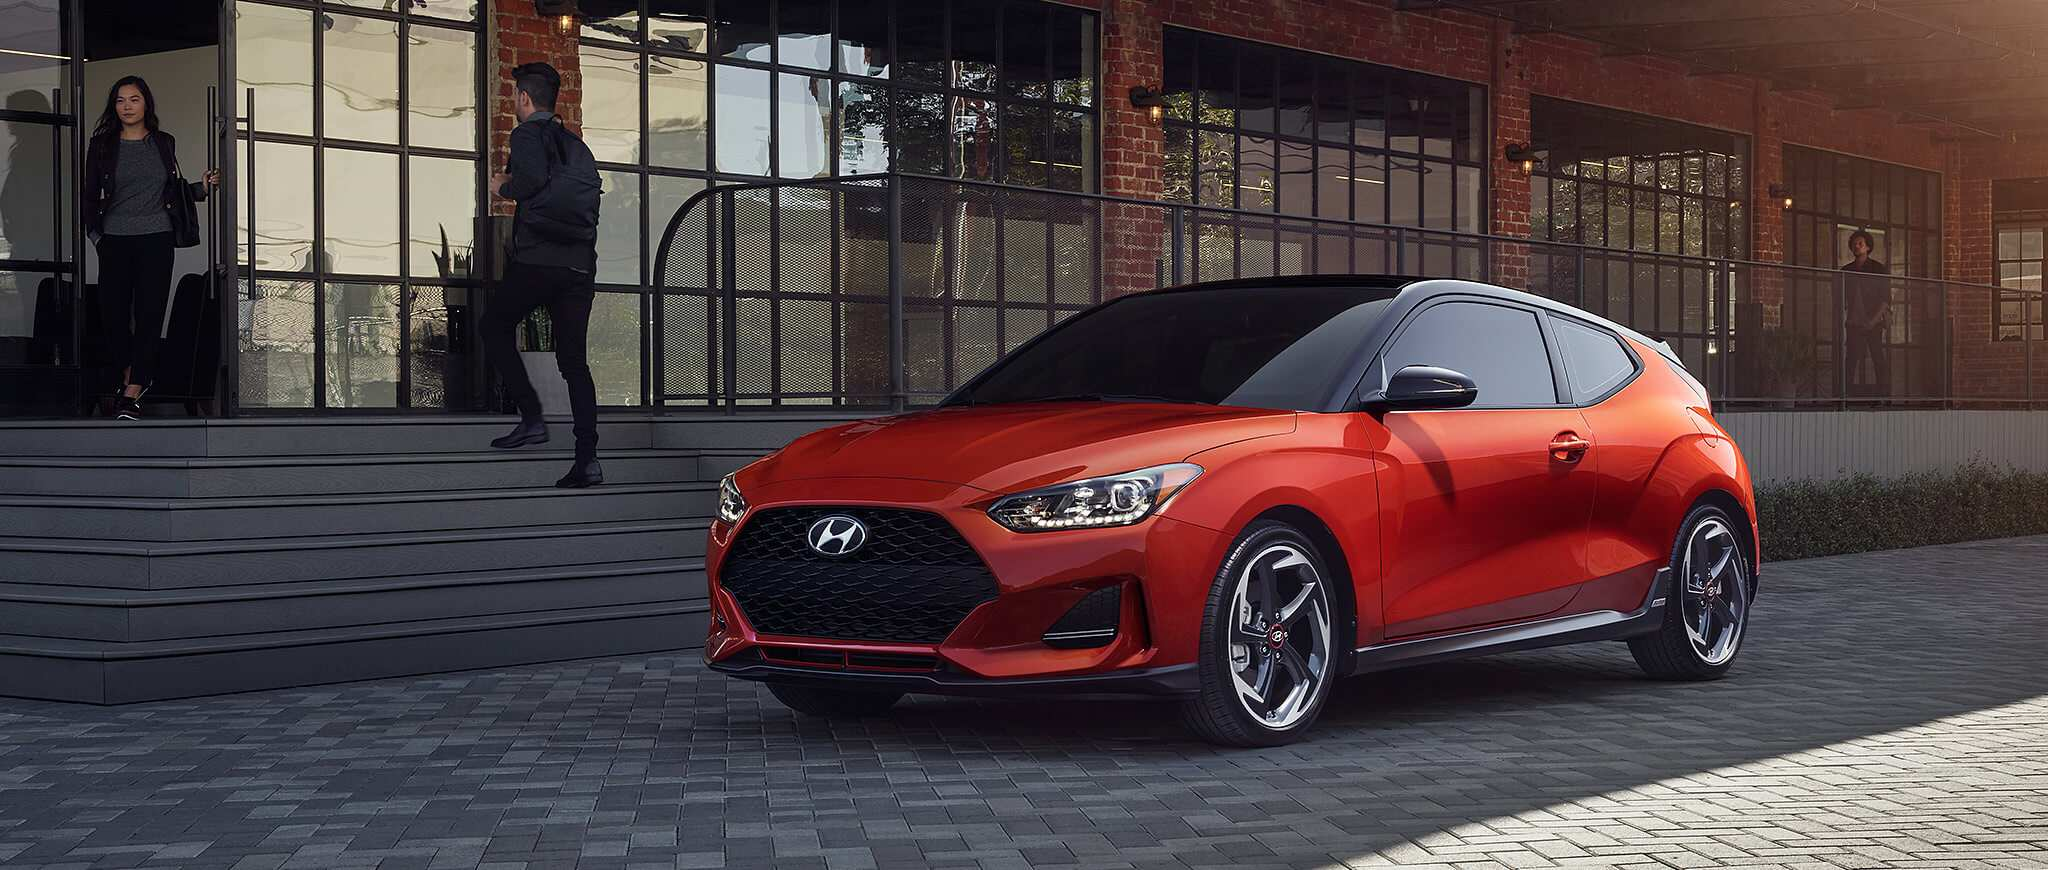 66 All New 2019 Hyundai Veloster Release Date And Concept